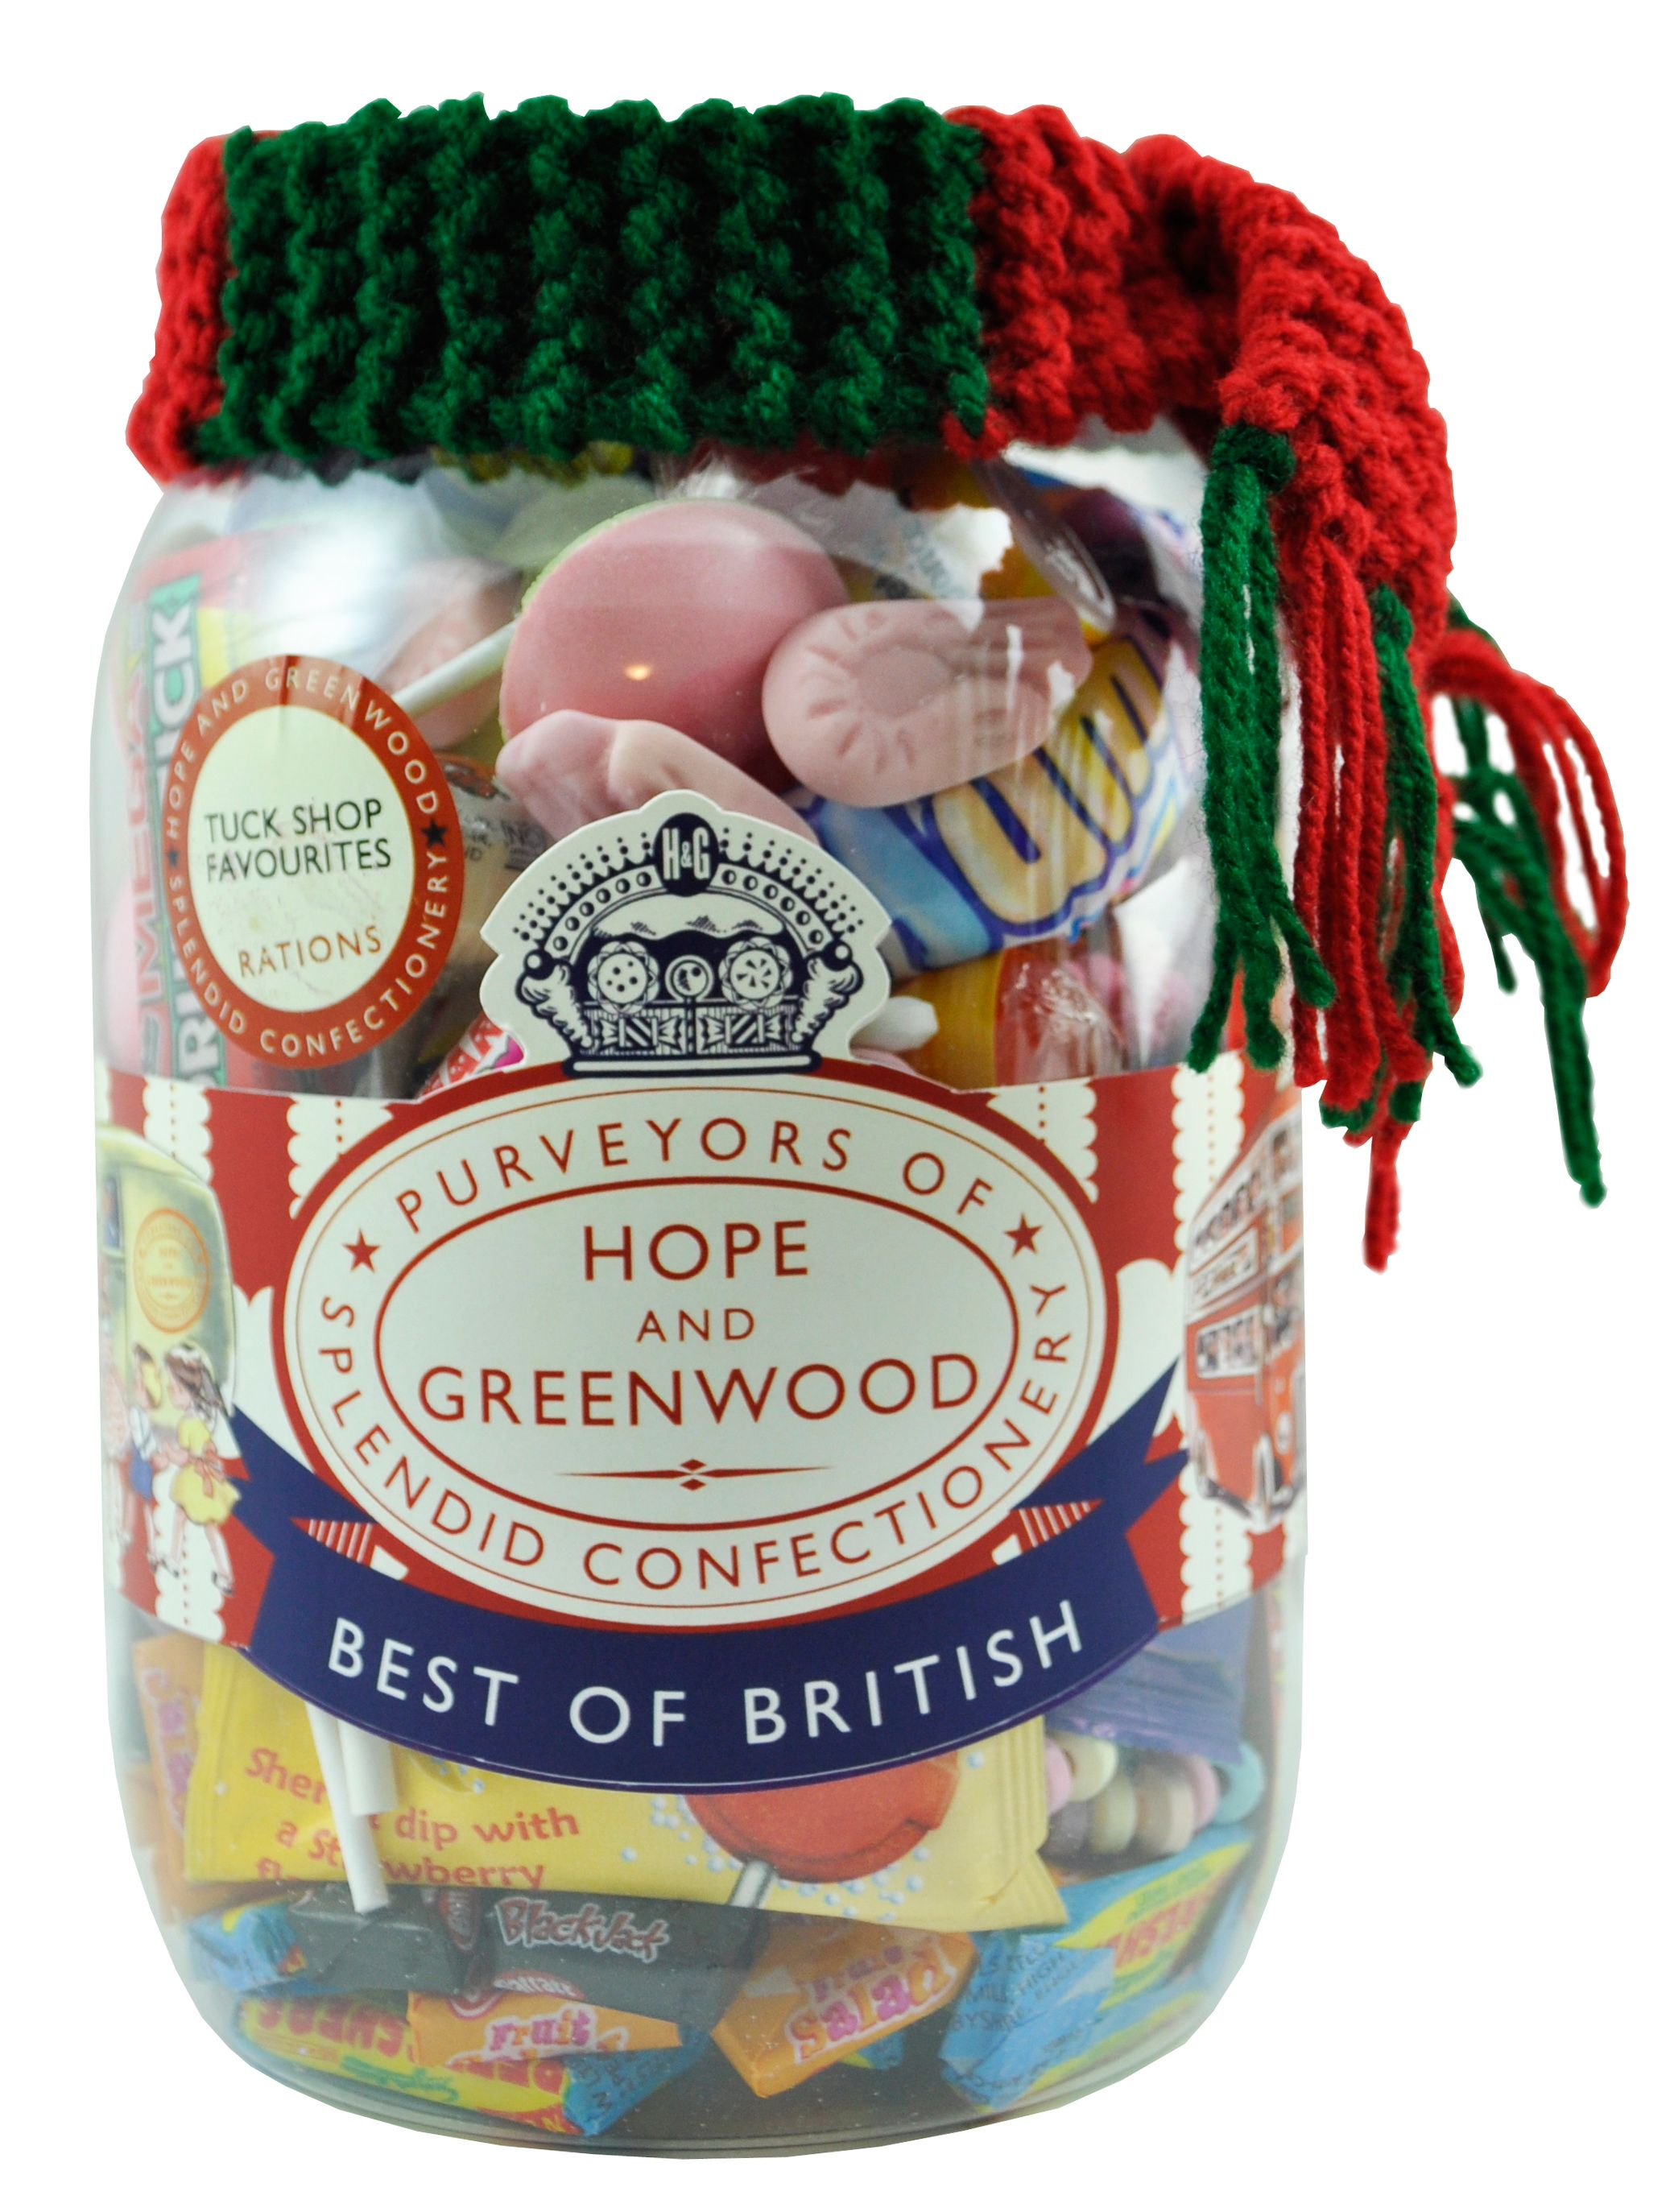 Tuck shop jar with woolly scarf